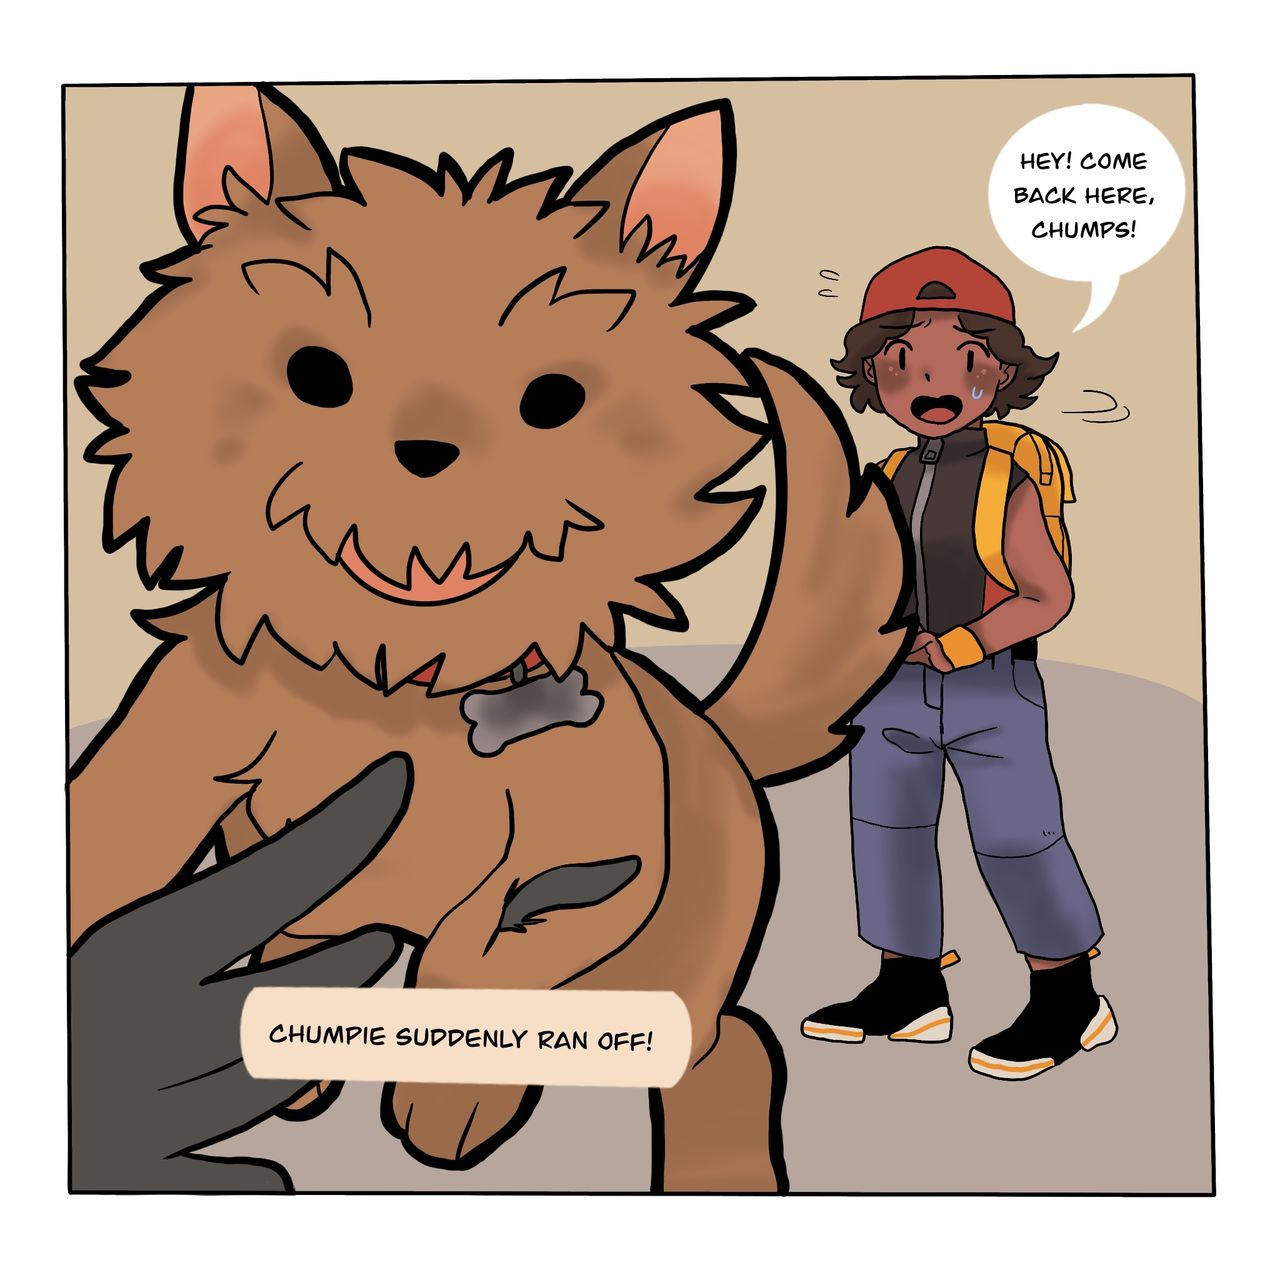 The webcomic shows the main character in the backgound shouting after the dog as he has suddenly dashed off chasing a pigeon. The foreground of the image shows the dog gleefully  pursuing the bird.